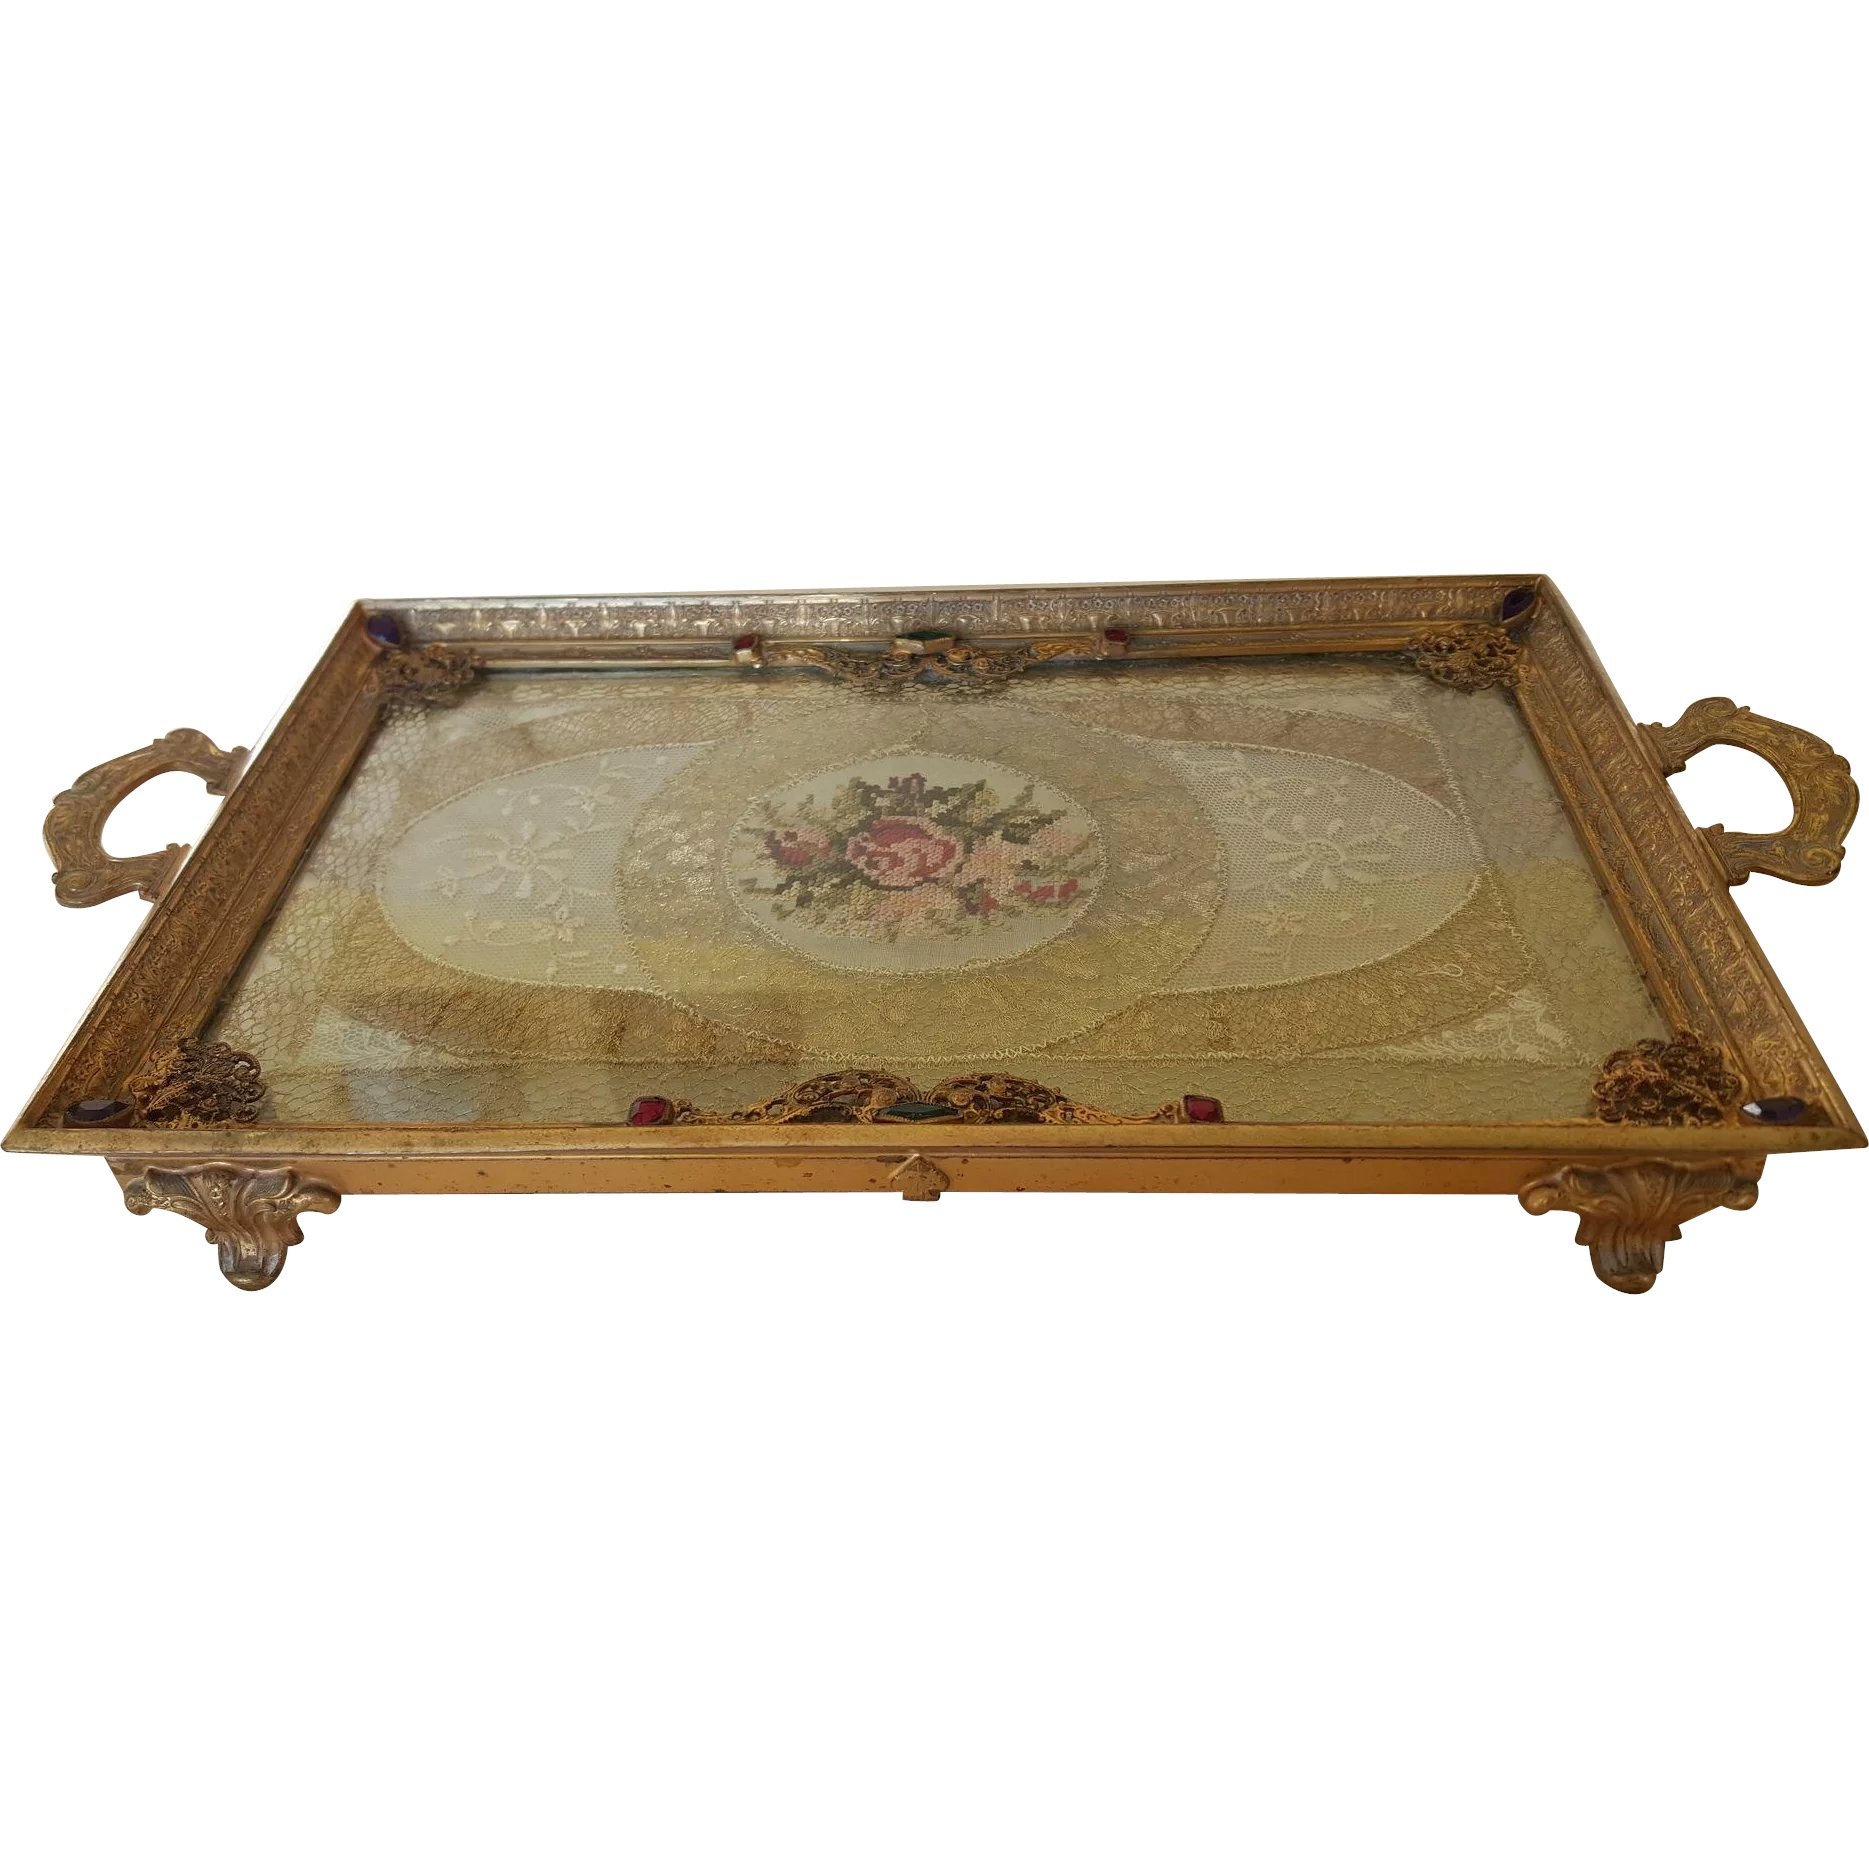 Vintage 1920 S Jeweled Silvercraft Vanity Tray W Lace Insert Fifi Antique Perfume Bottles Rare Compacts Ruby Lane